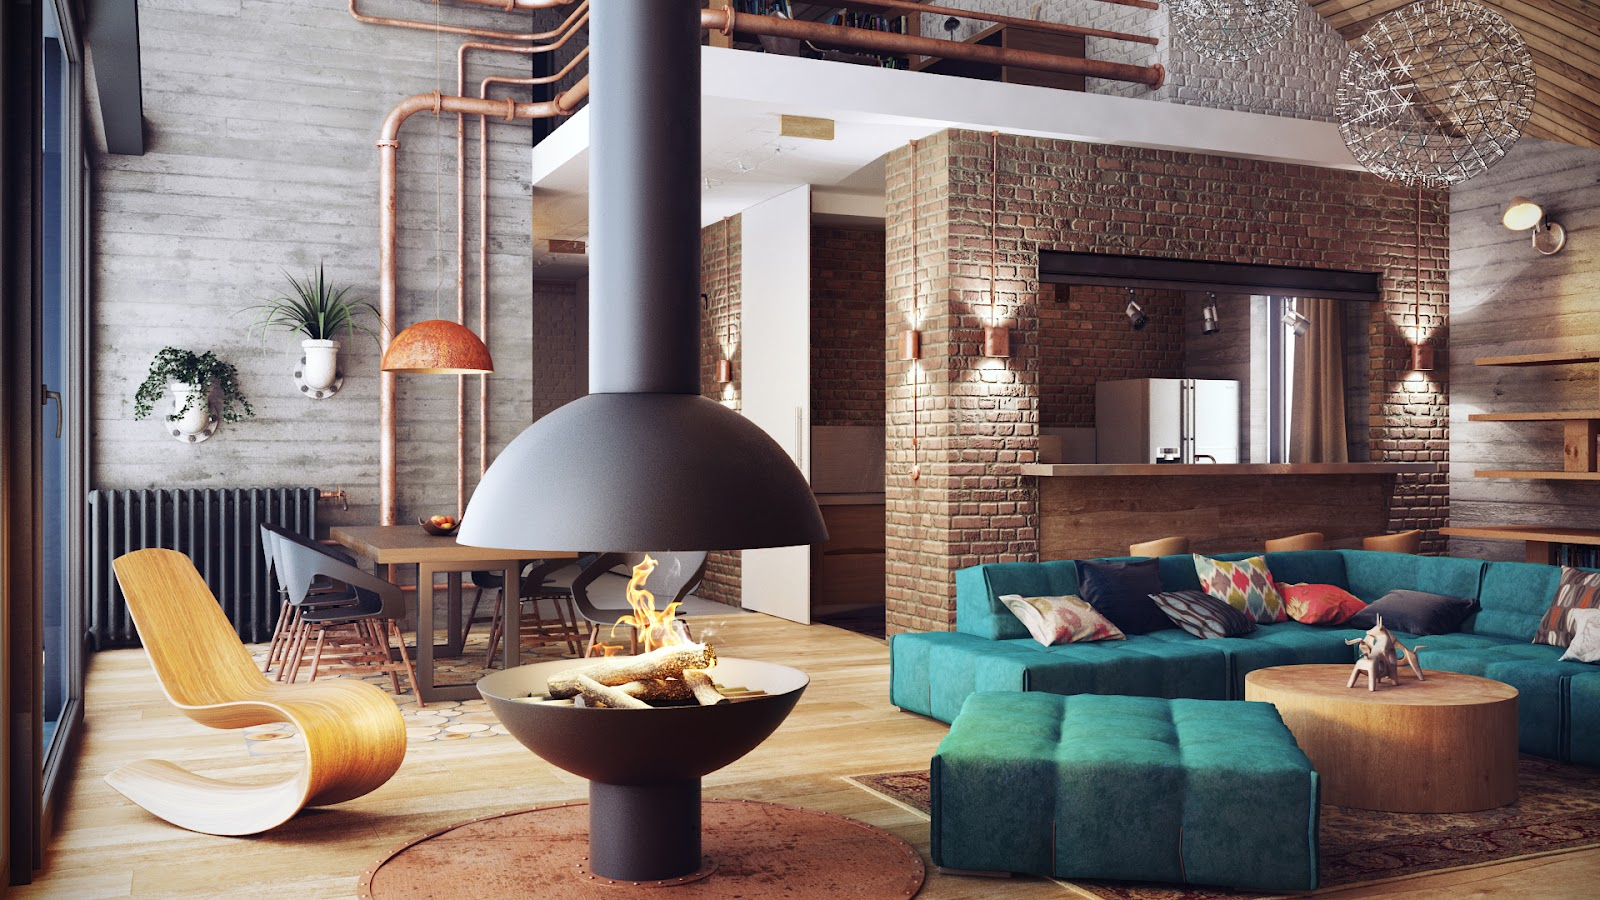 Loft Design Ideas image of apartment loft design ideas Loft Interior Of The Living Room With Original Safe Fireplace And Turquoise Furniture